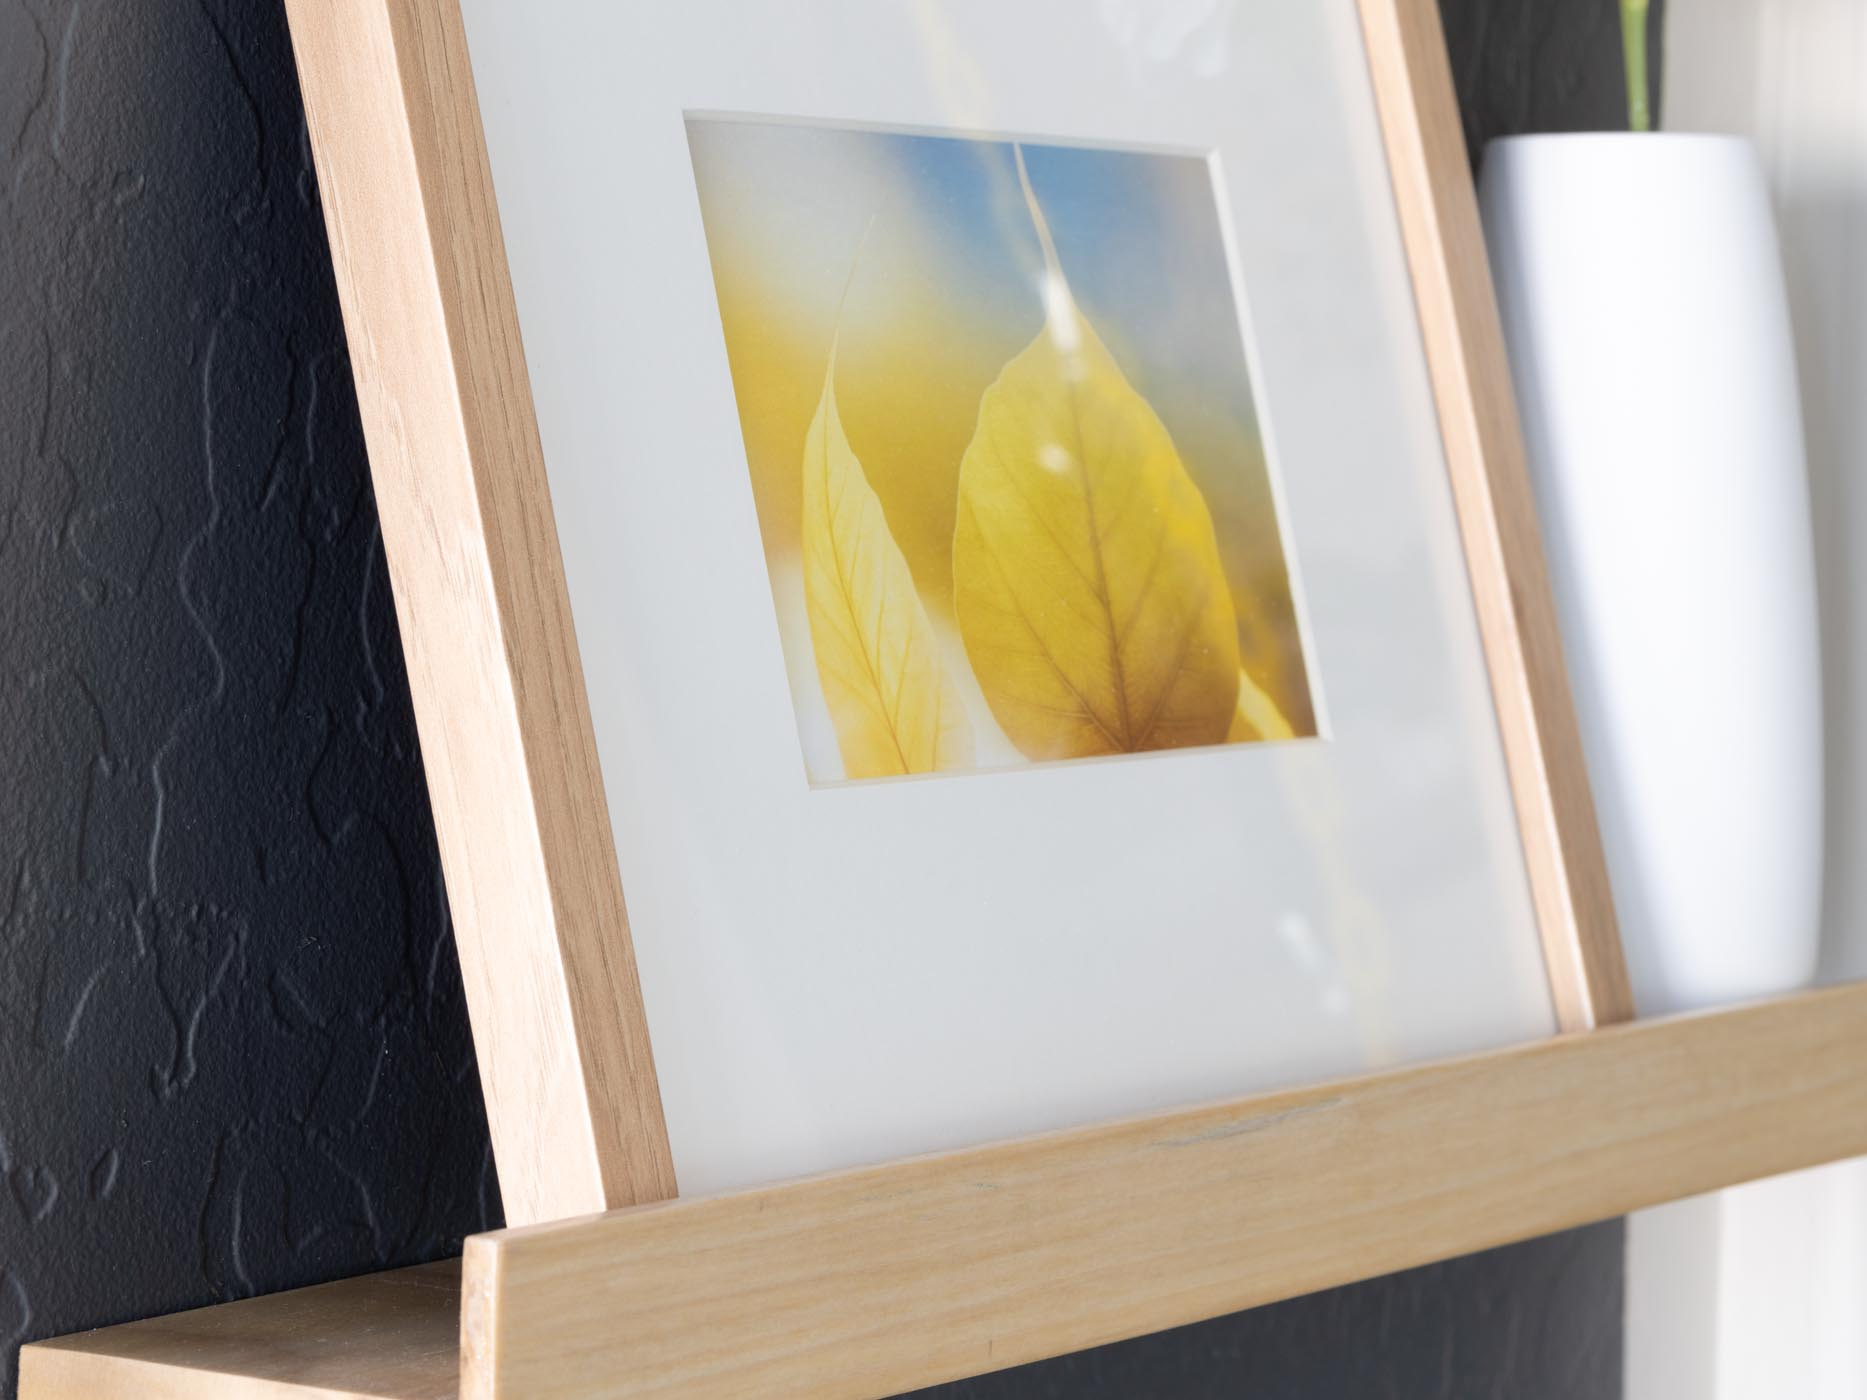 wooden shelf and picture frame